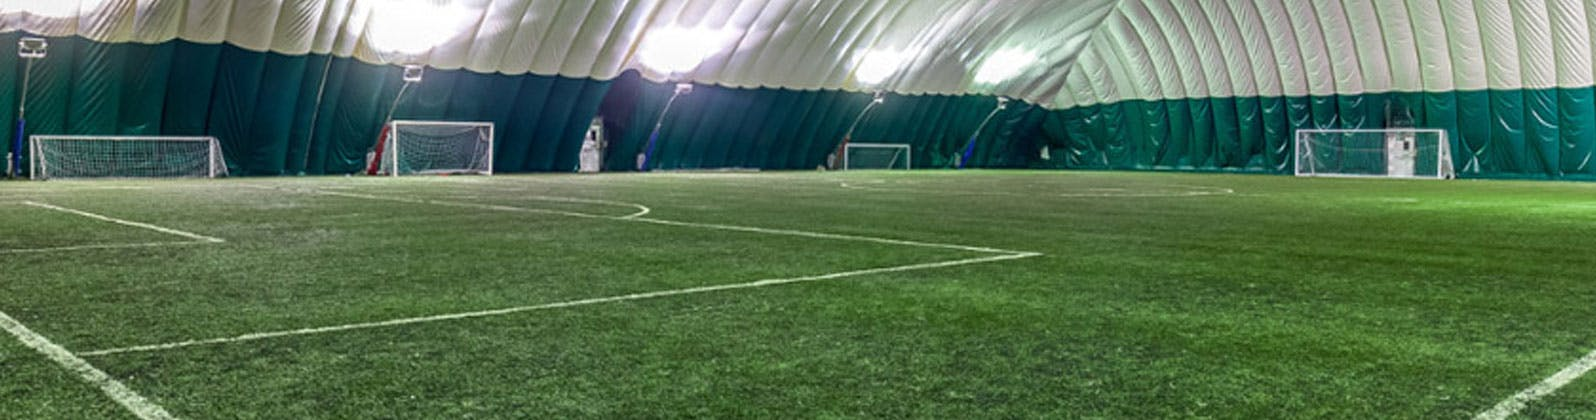 Crystal Palace National Sports Centre Indoor football